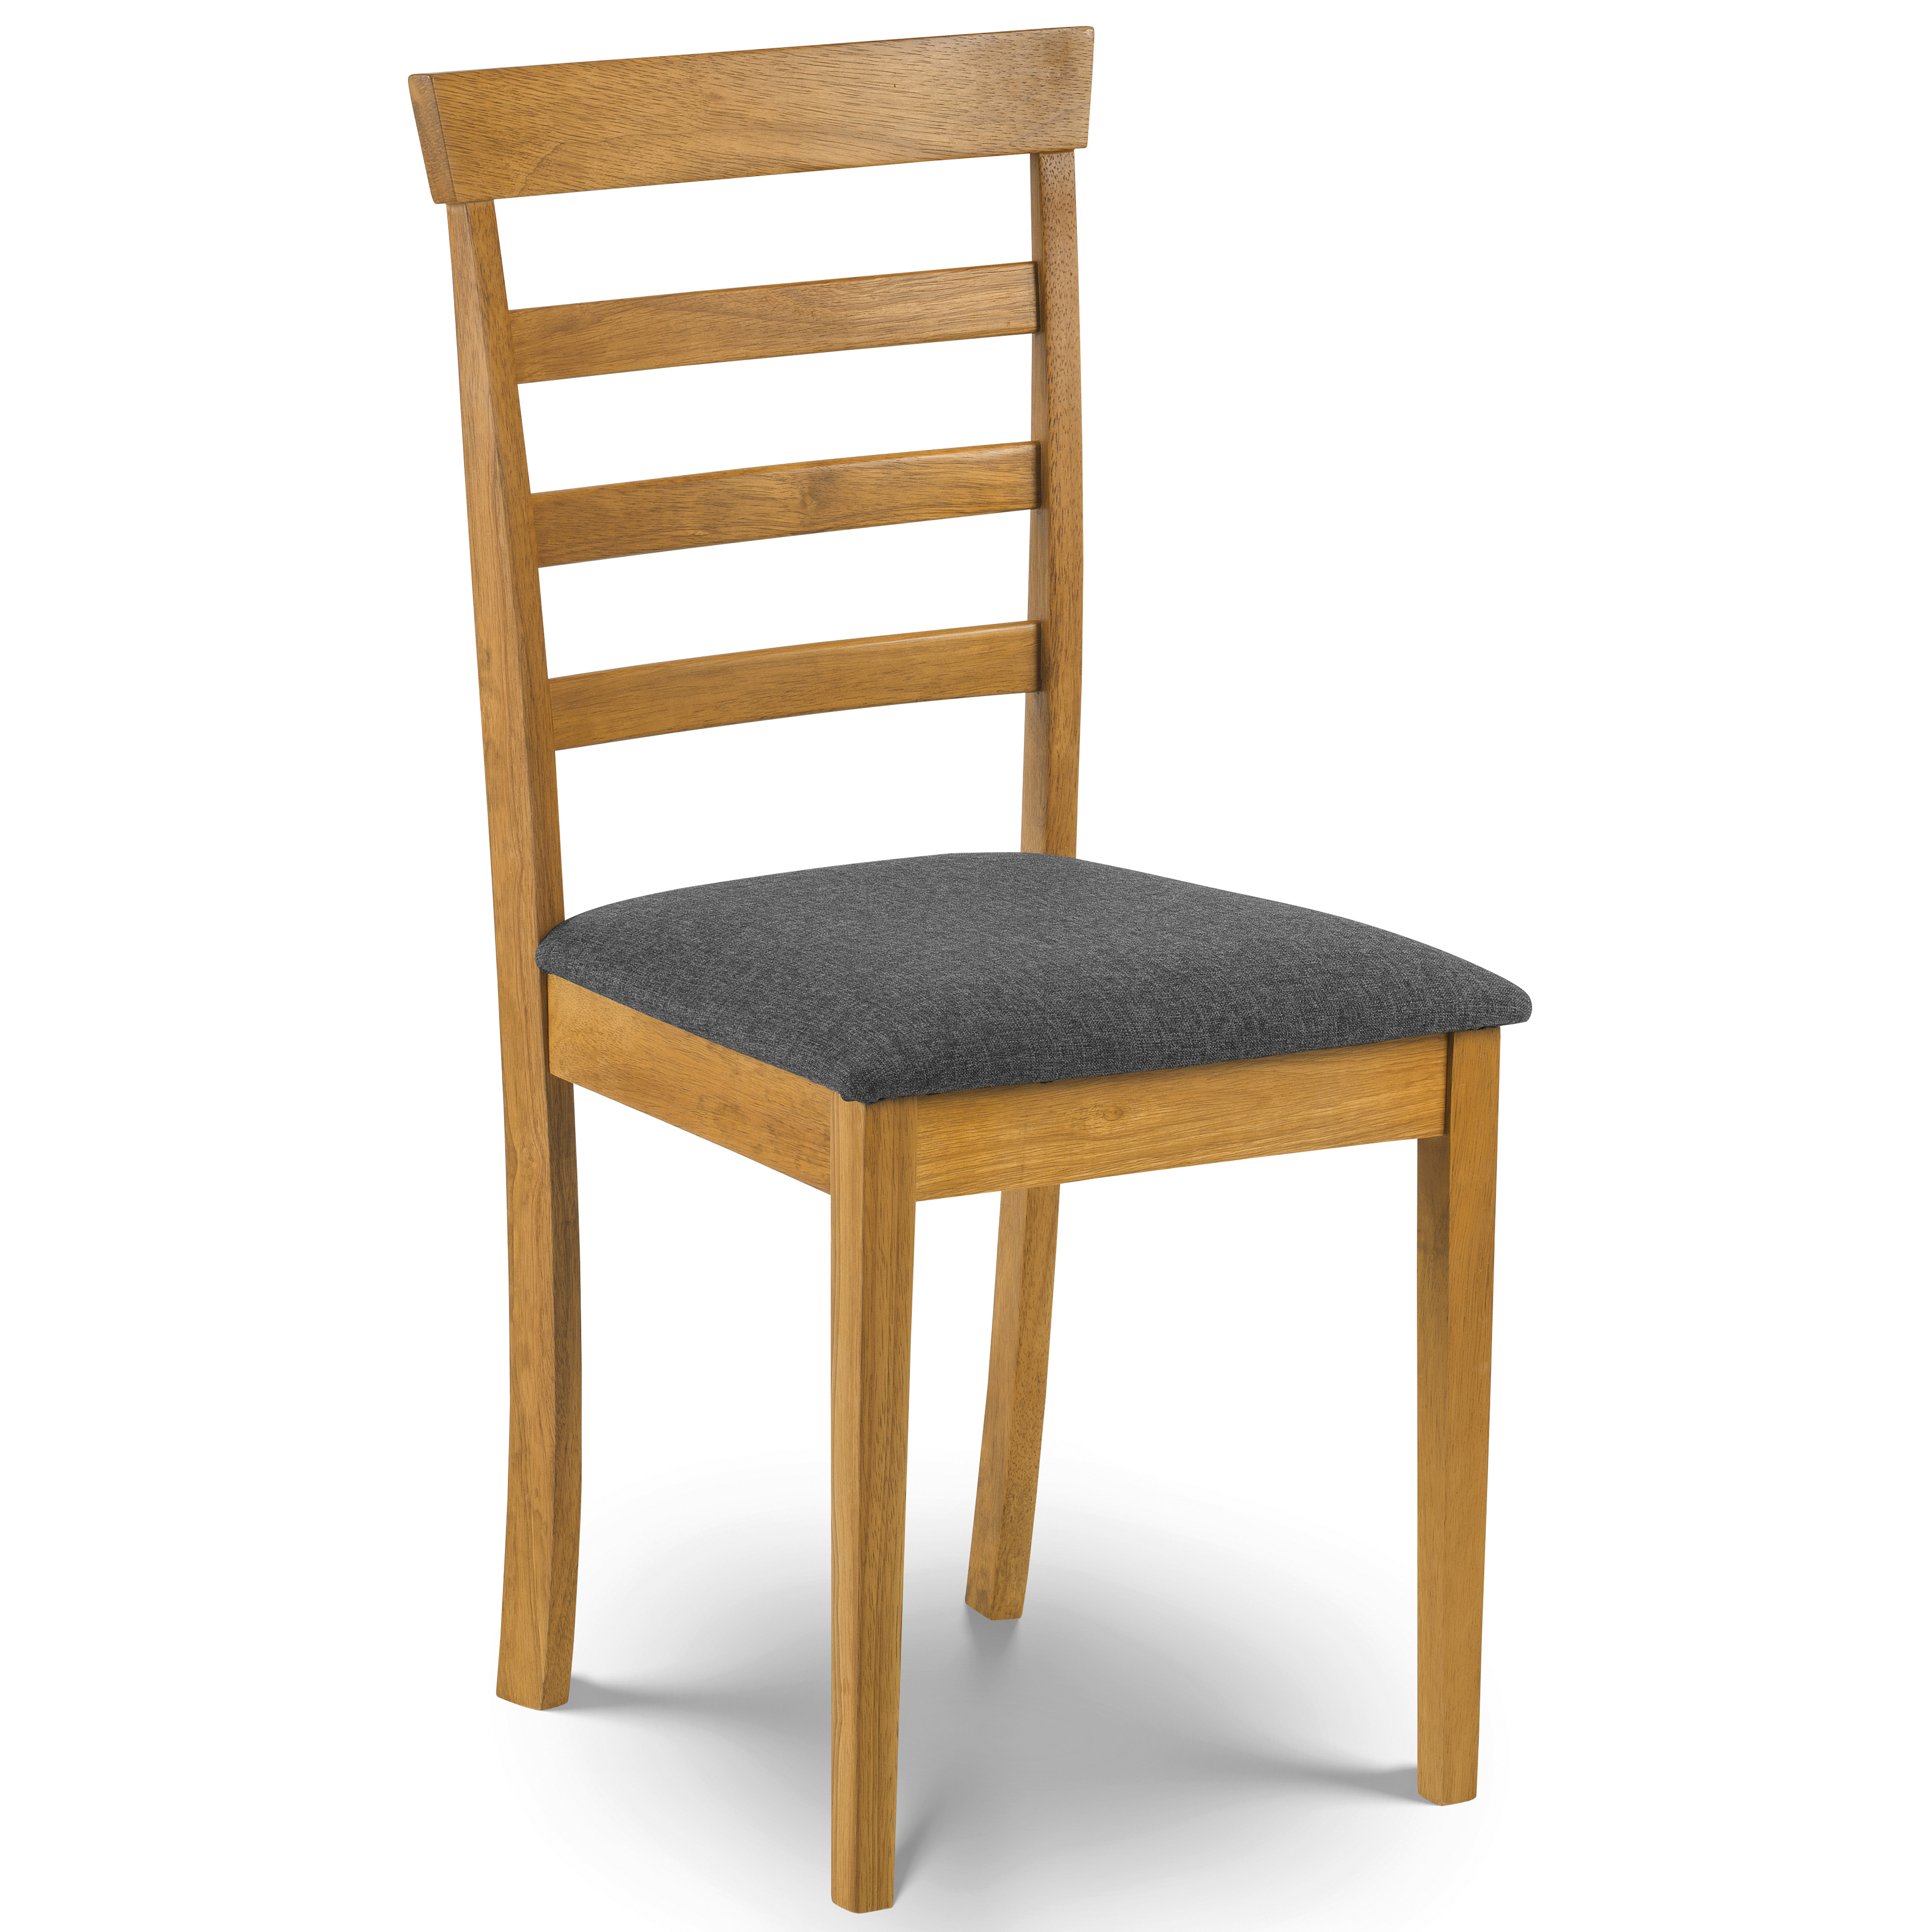 Room Store Furniture Locations: Julian Bowen Cleo Dining Chair